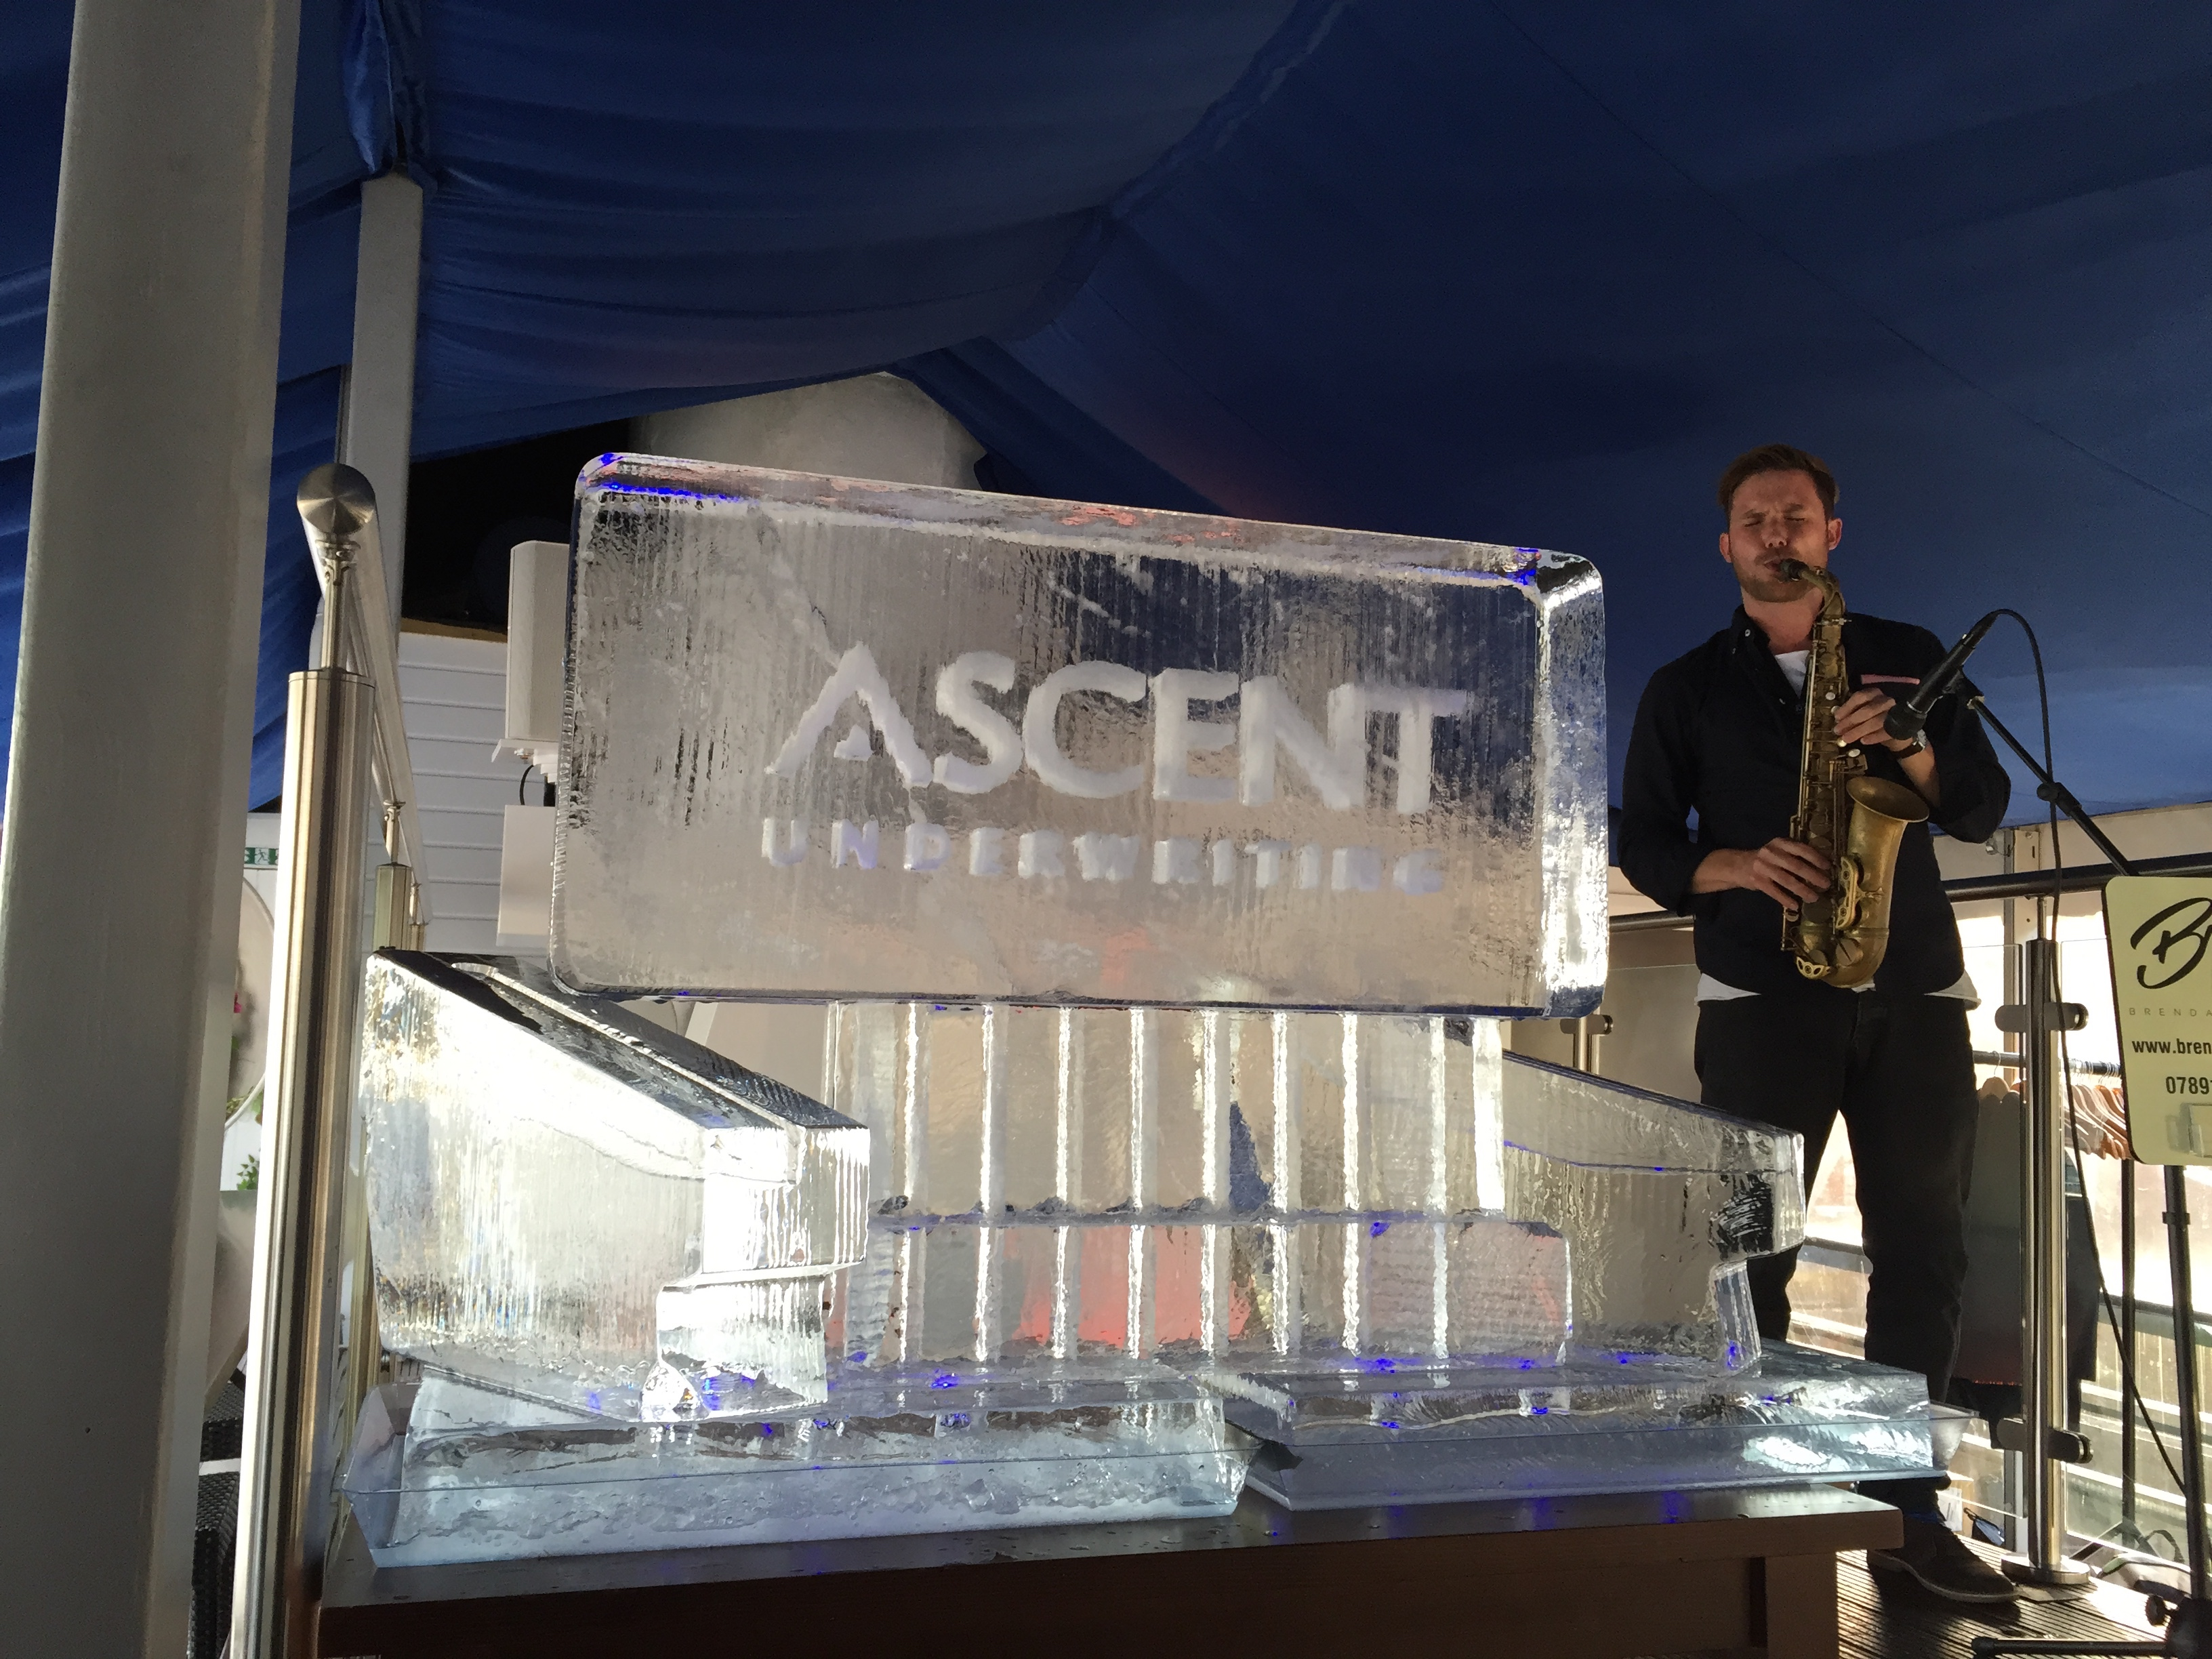 Ascent Underwriting logo (snowfill)